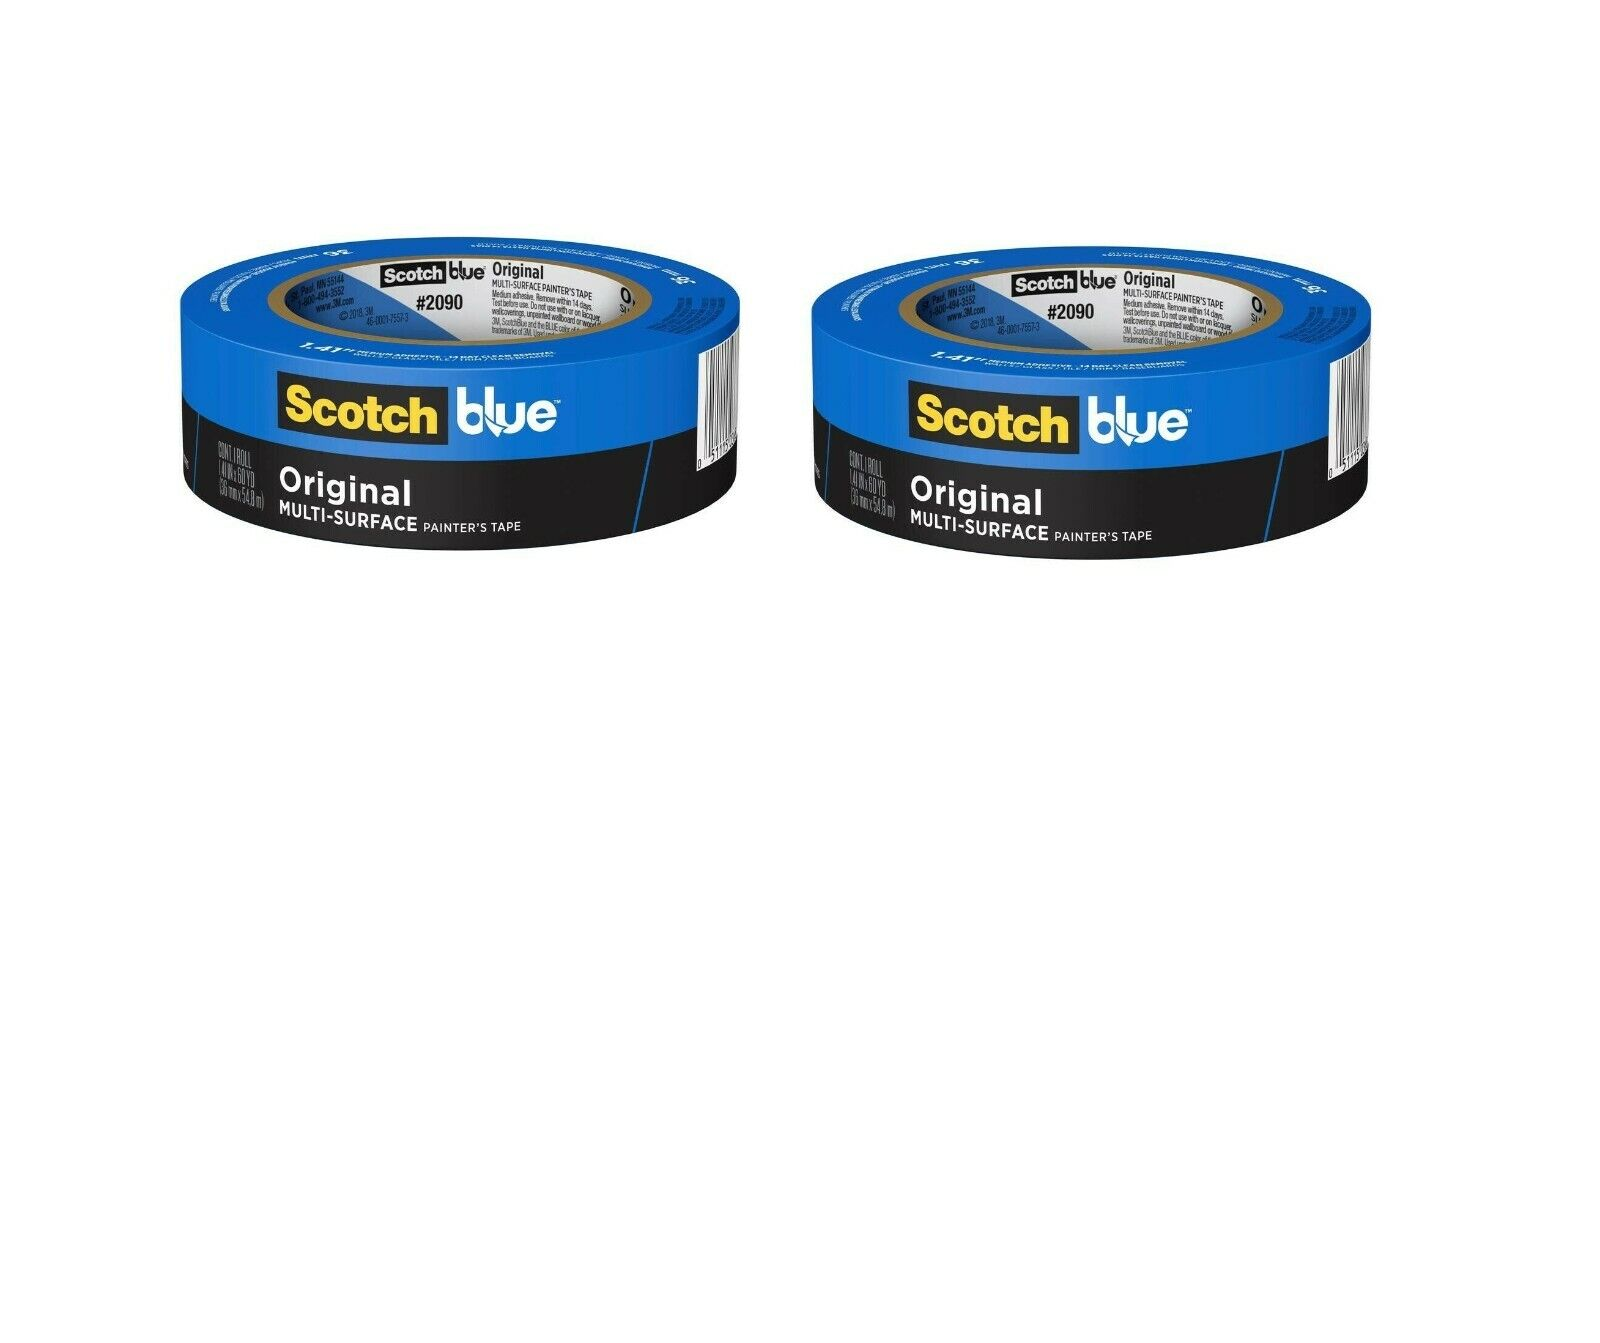 ScotchBlue Painter's Tape lot of pack Multi-Use .94-Inch by